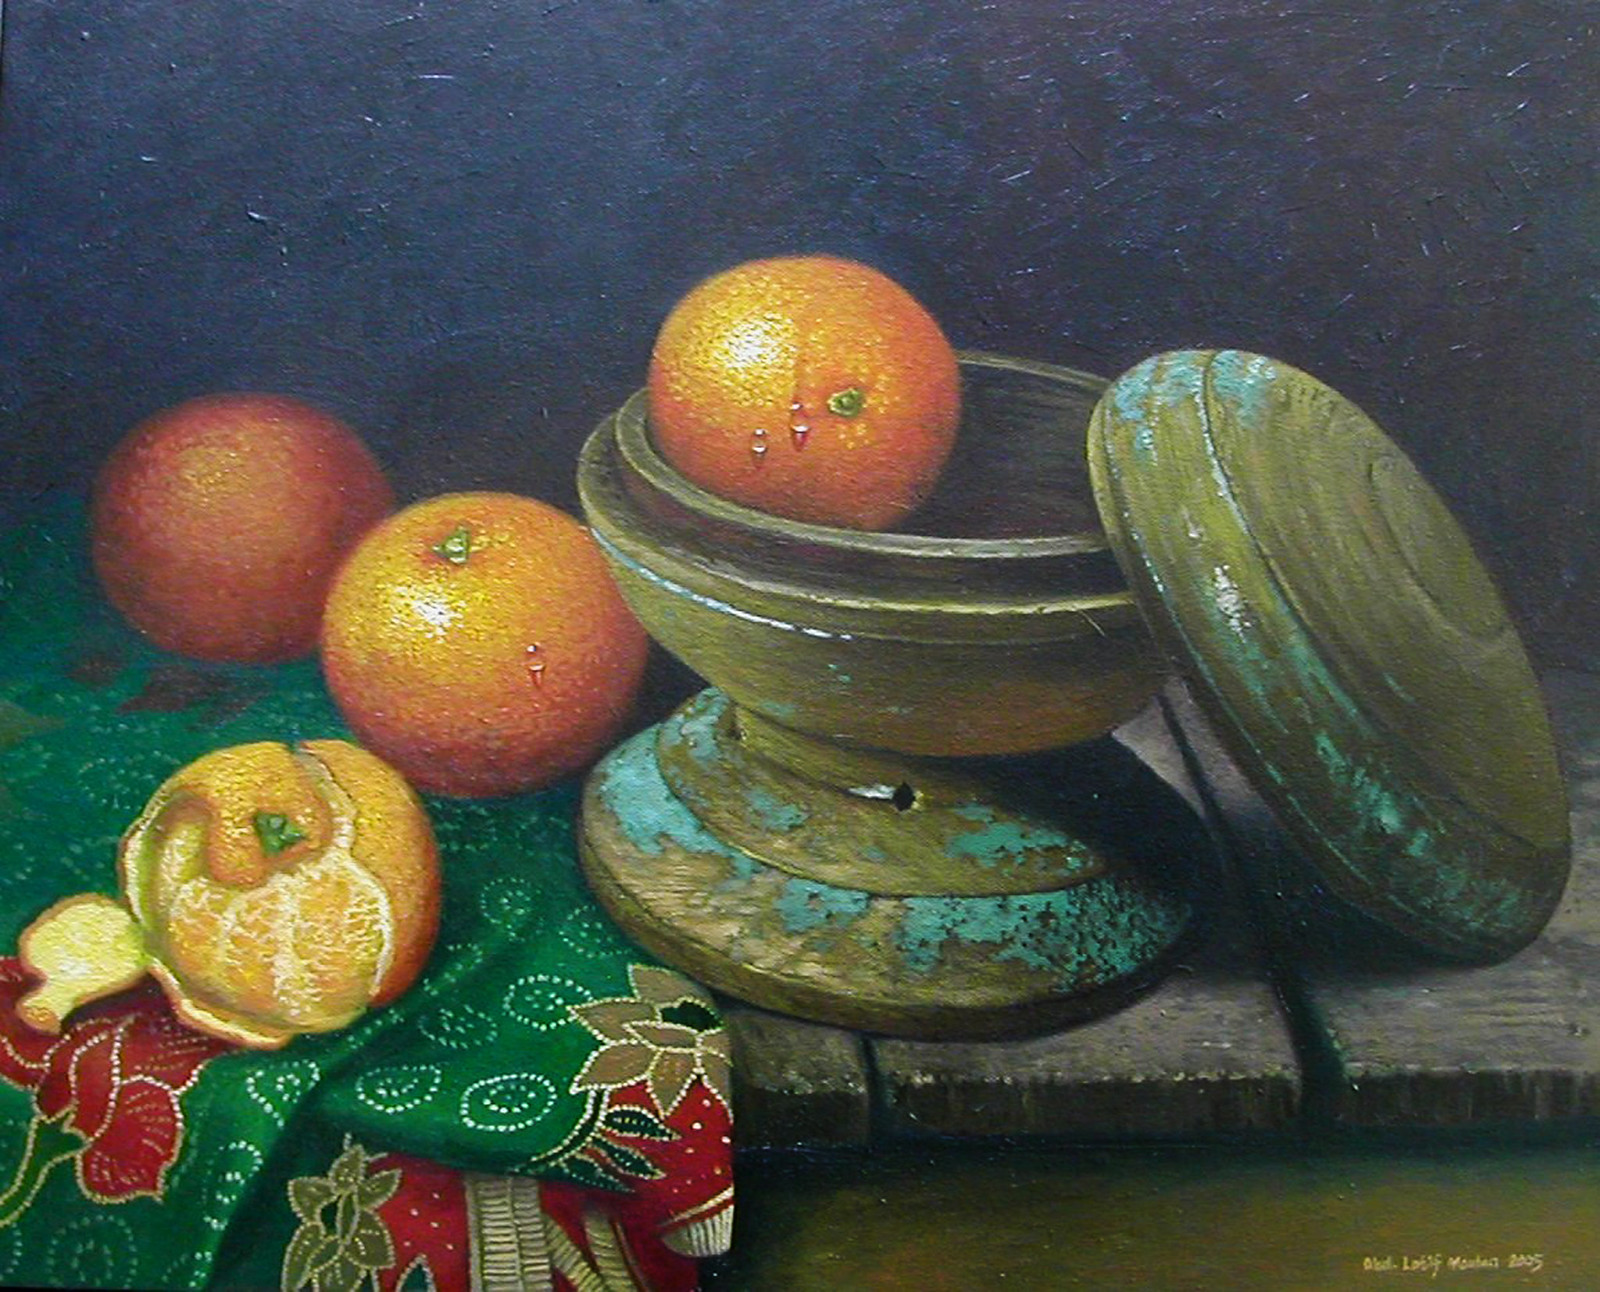 Oil painting by Latif Maulan